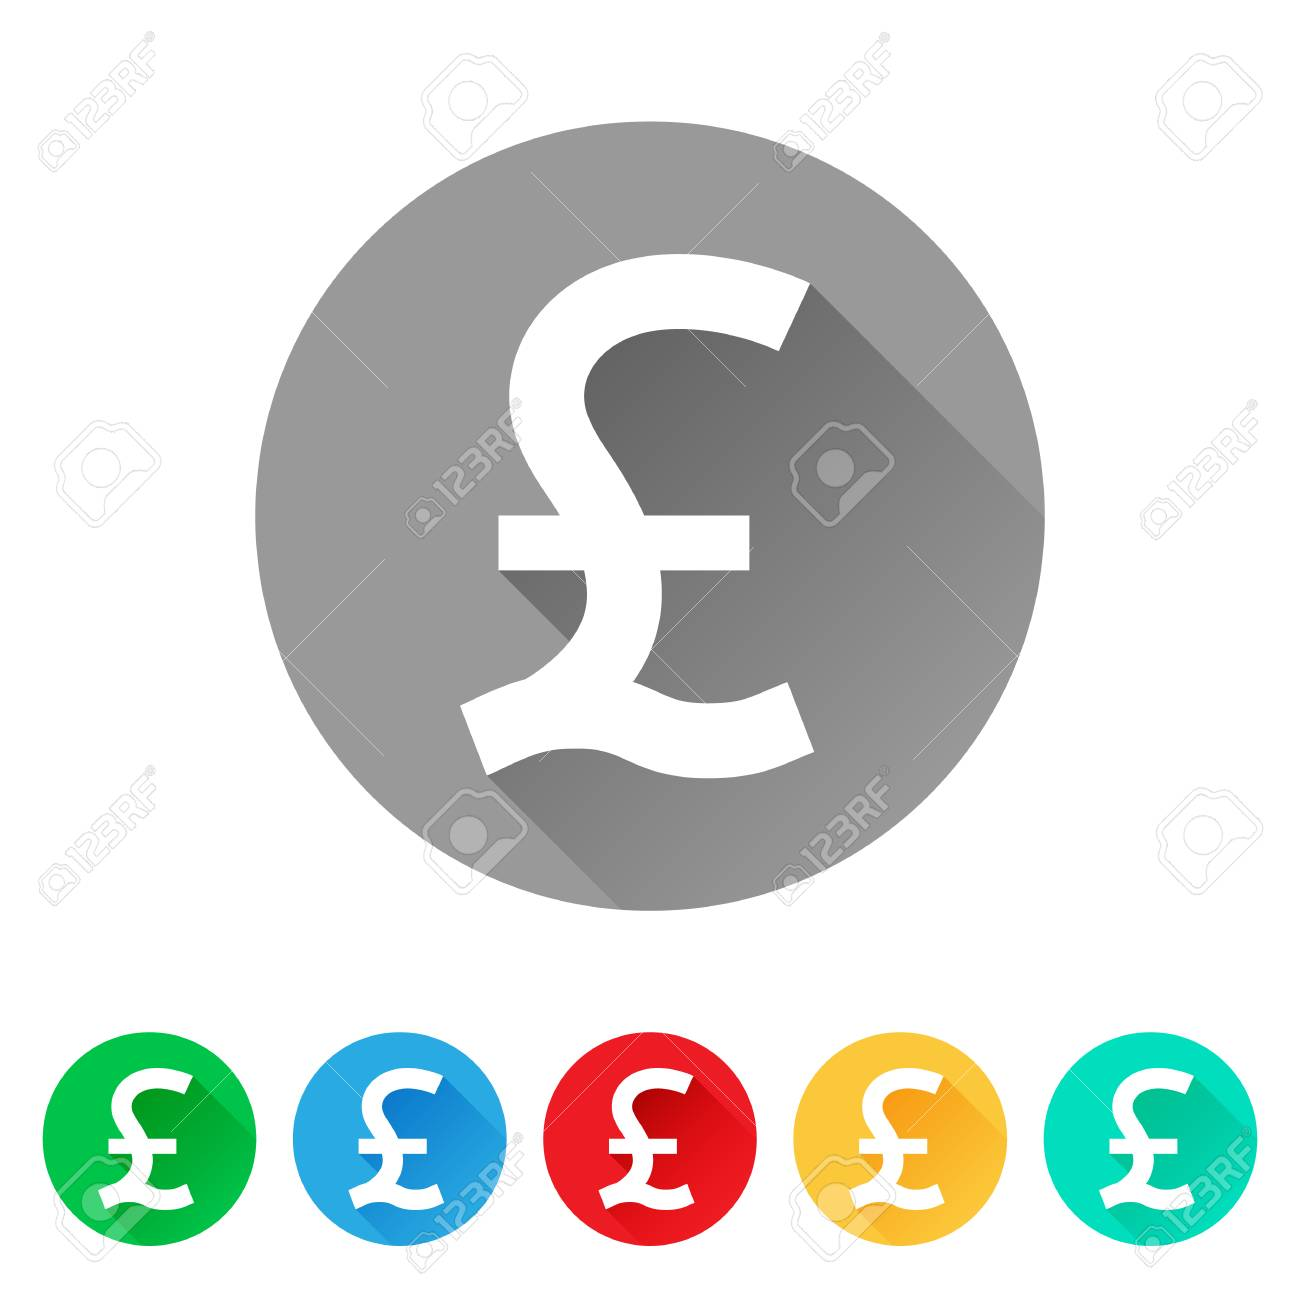 Gbp Set Of Pound Sign Icons Currency Symbol Royalty Free Cliparts